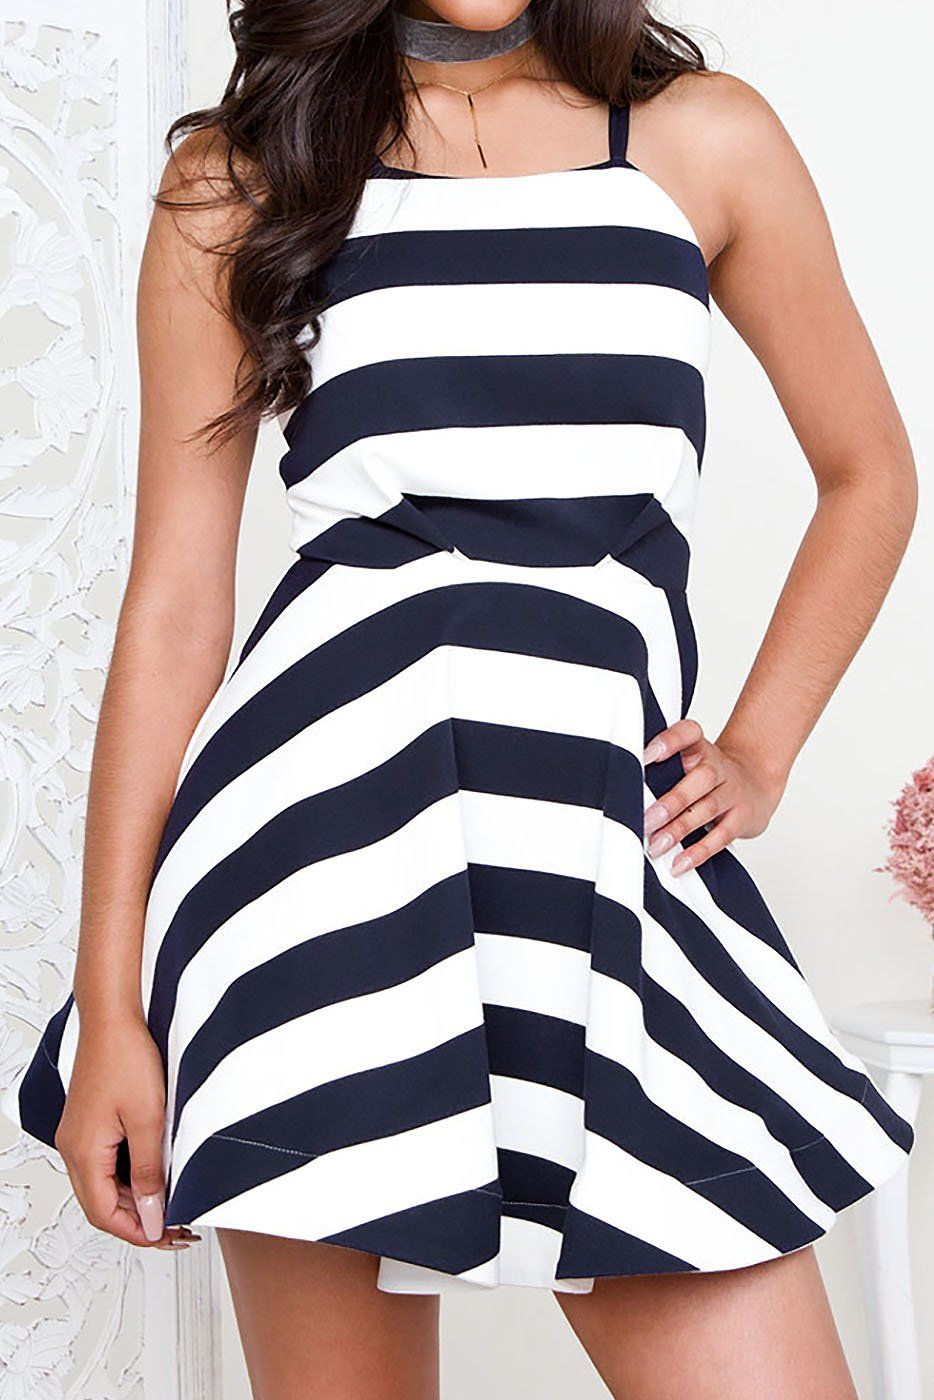 Zendaya Striped Dress | Shop Priceless